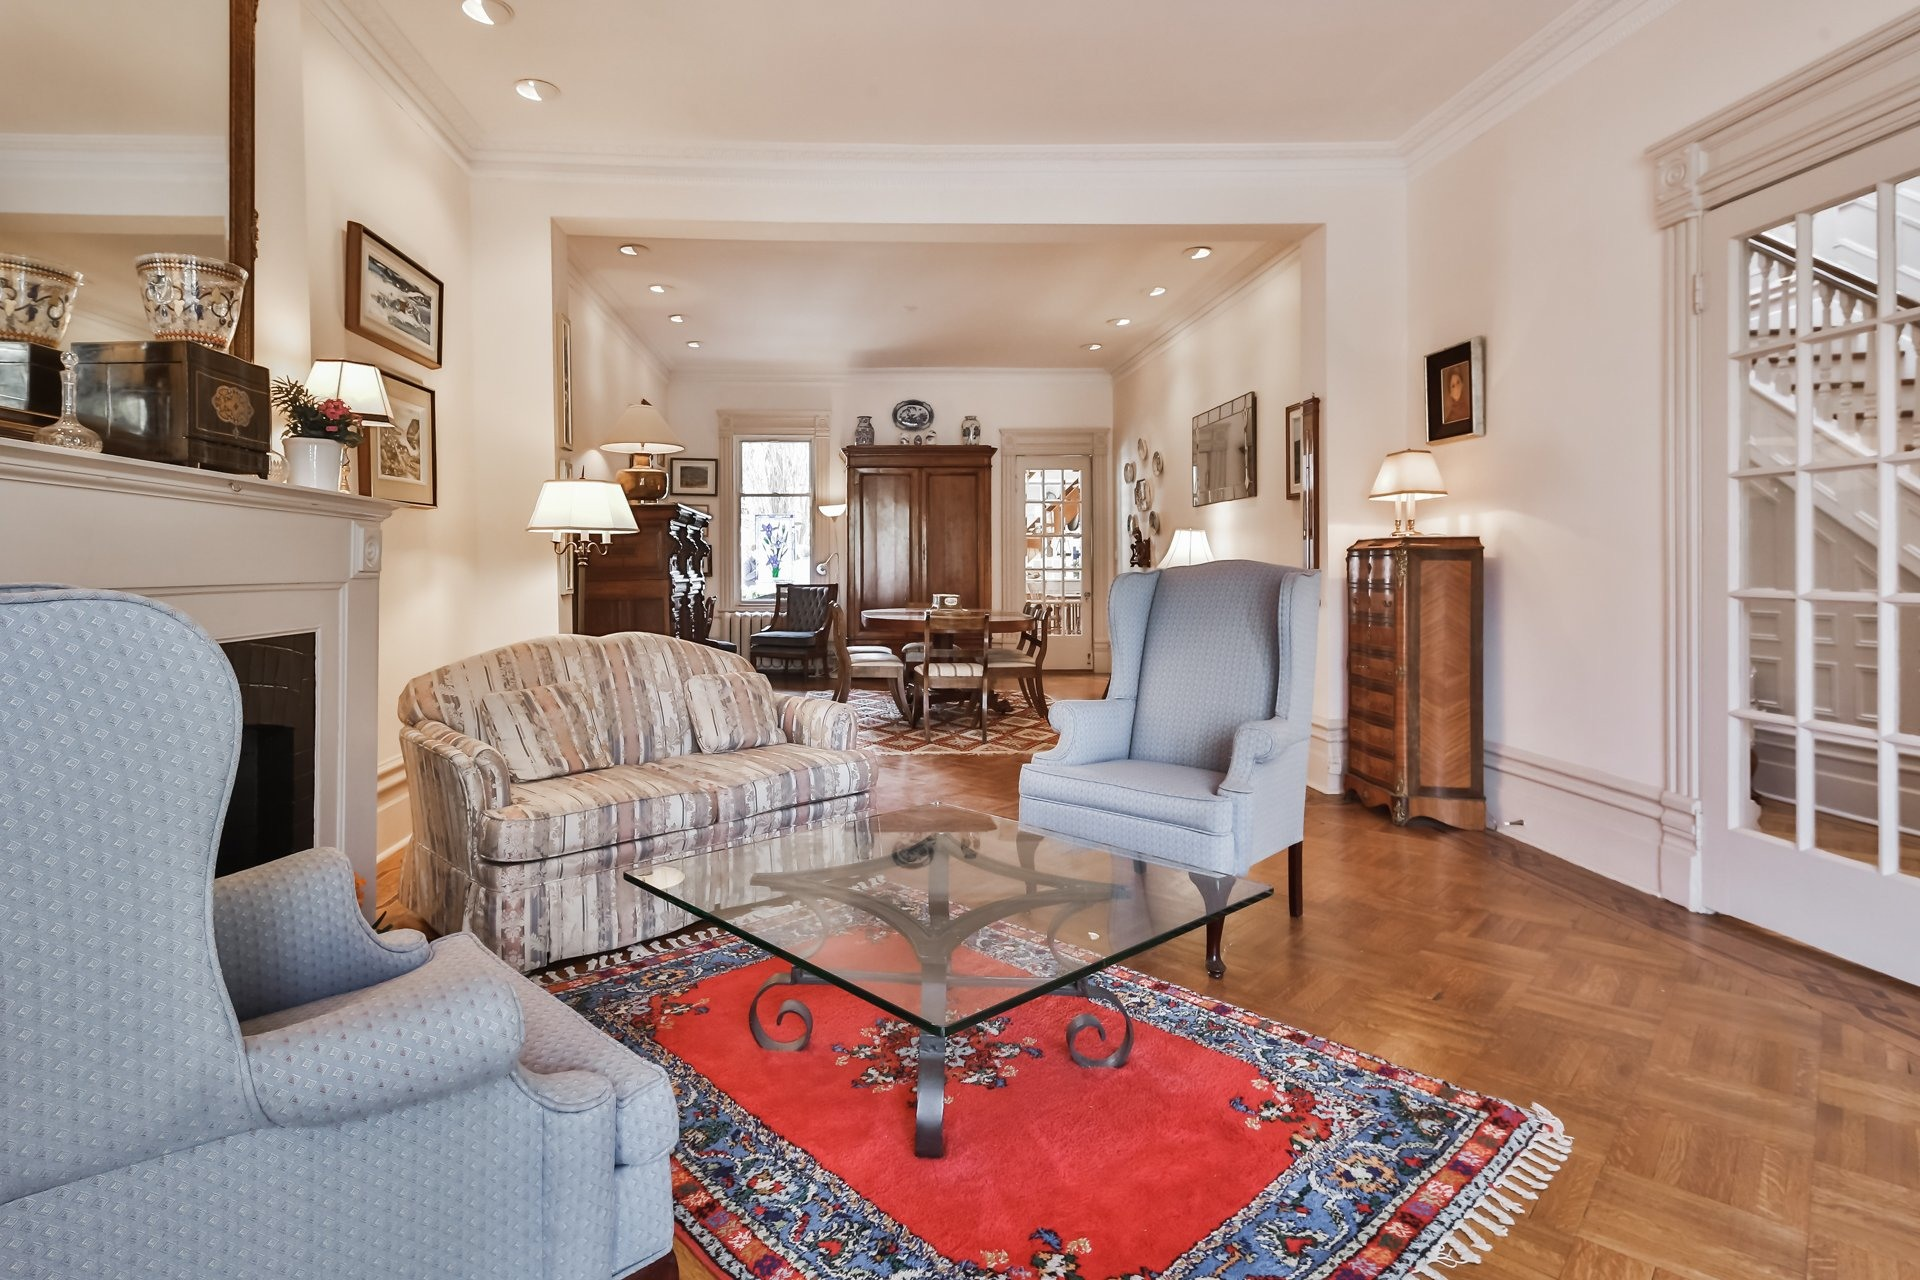 image 4 - House For sale Westmount - 12 rooms